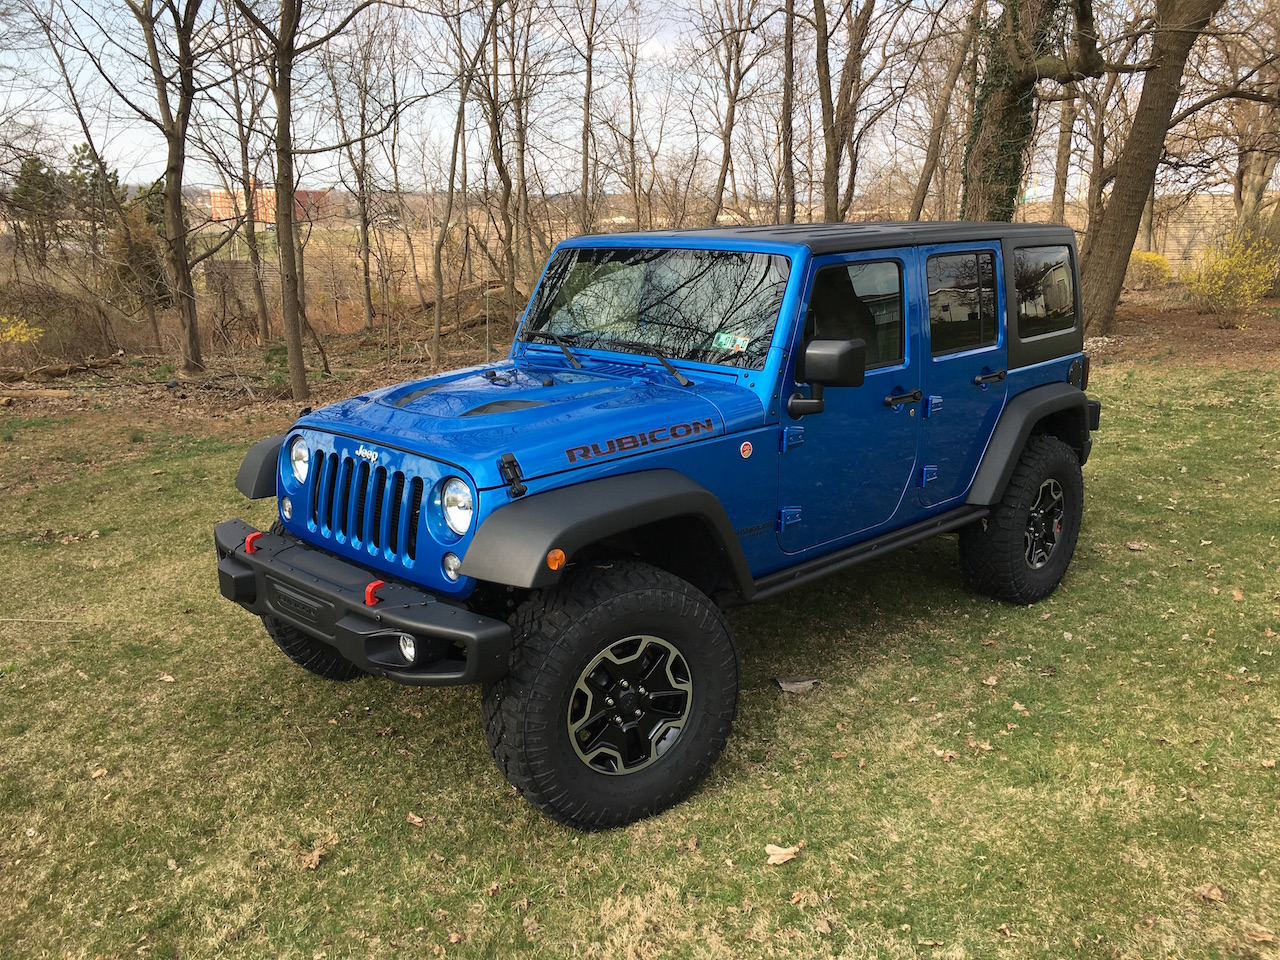 3k Jk From Stock To Trail Worthy With Jeep 37 Inch Tires Completed